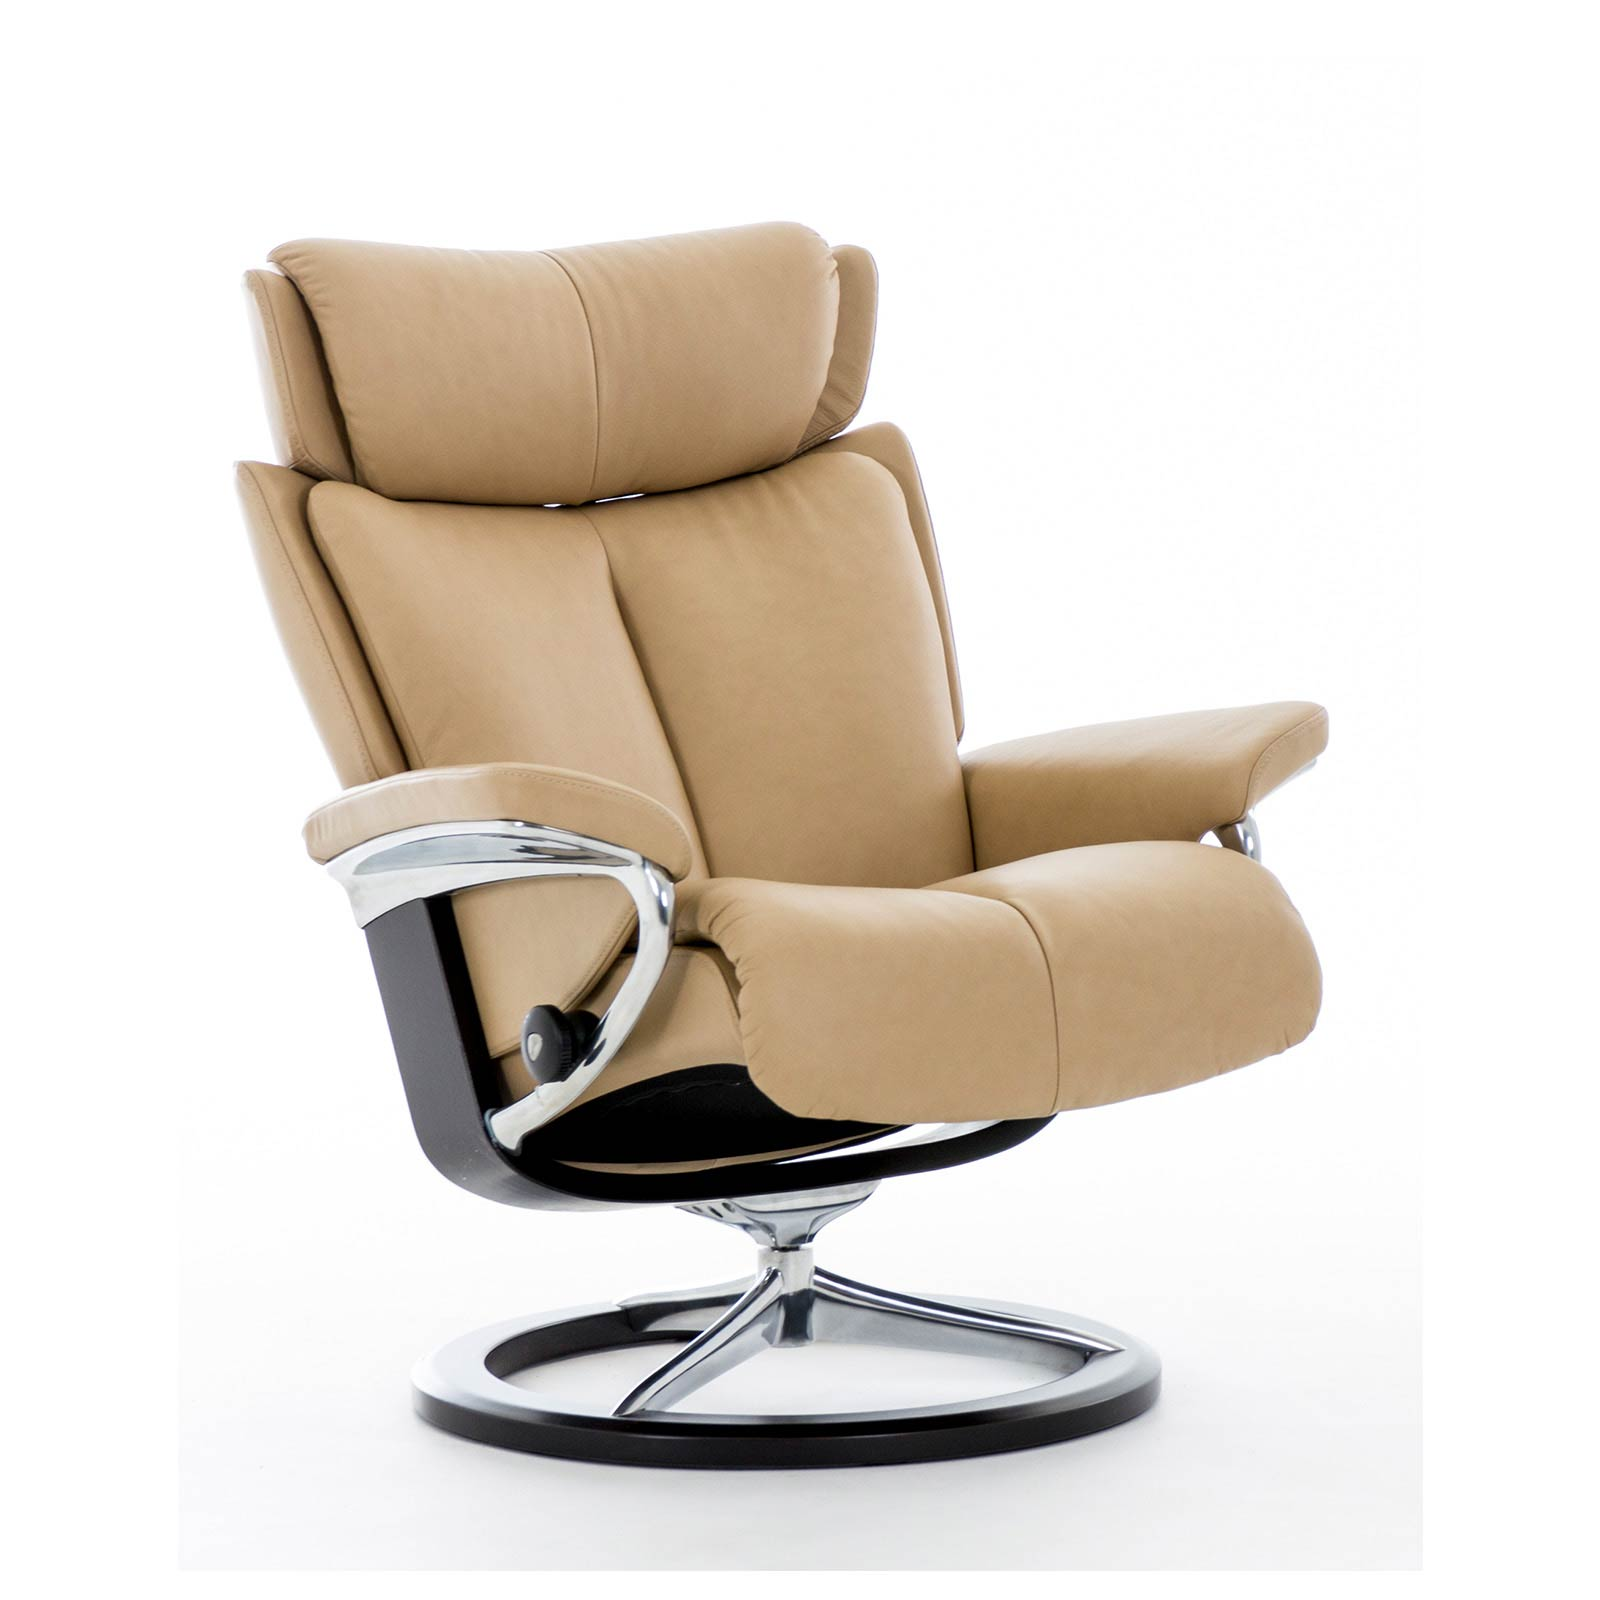 Relaxsessel stressless  Stressless Sessel MAGIC (M) Signature Paloma sand | Stressless